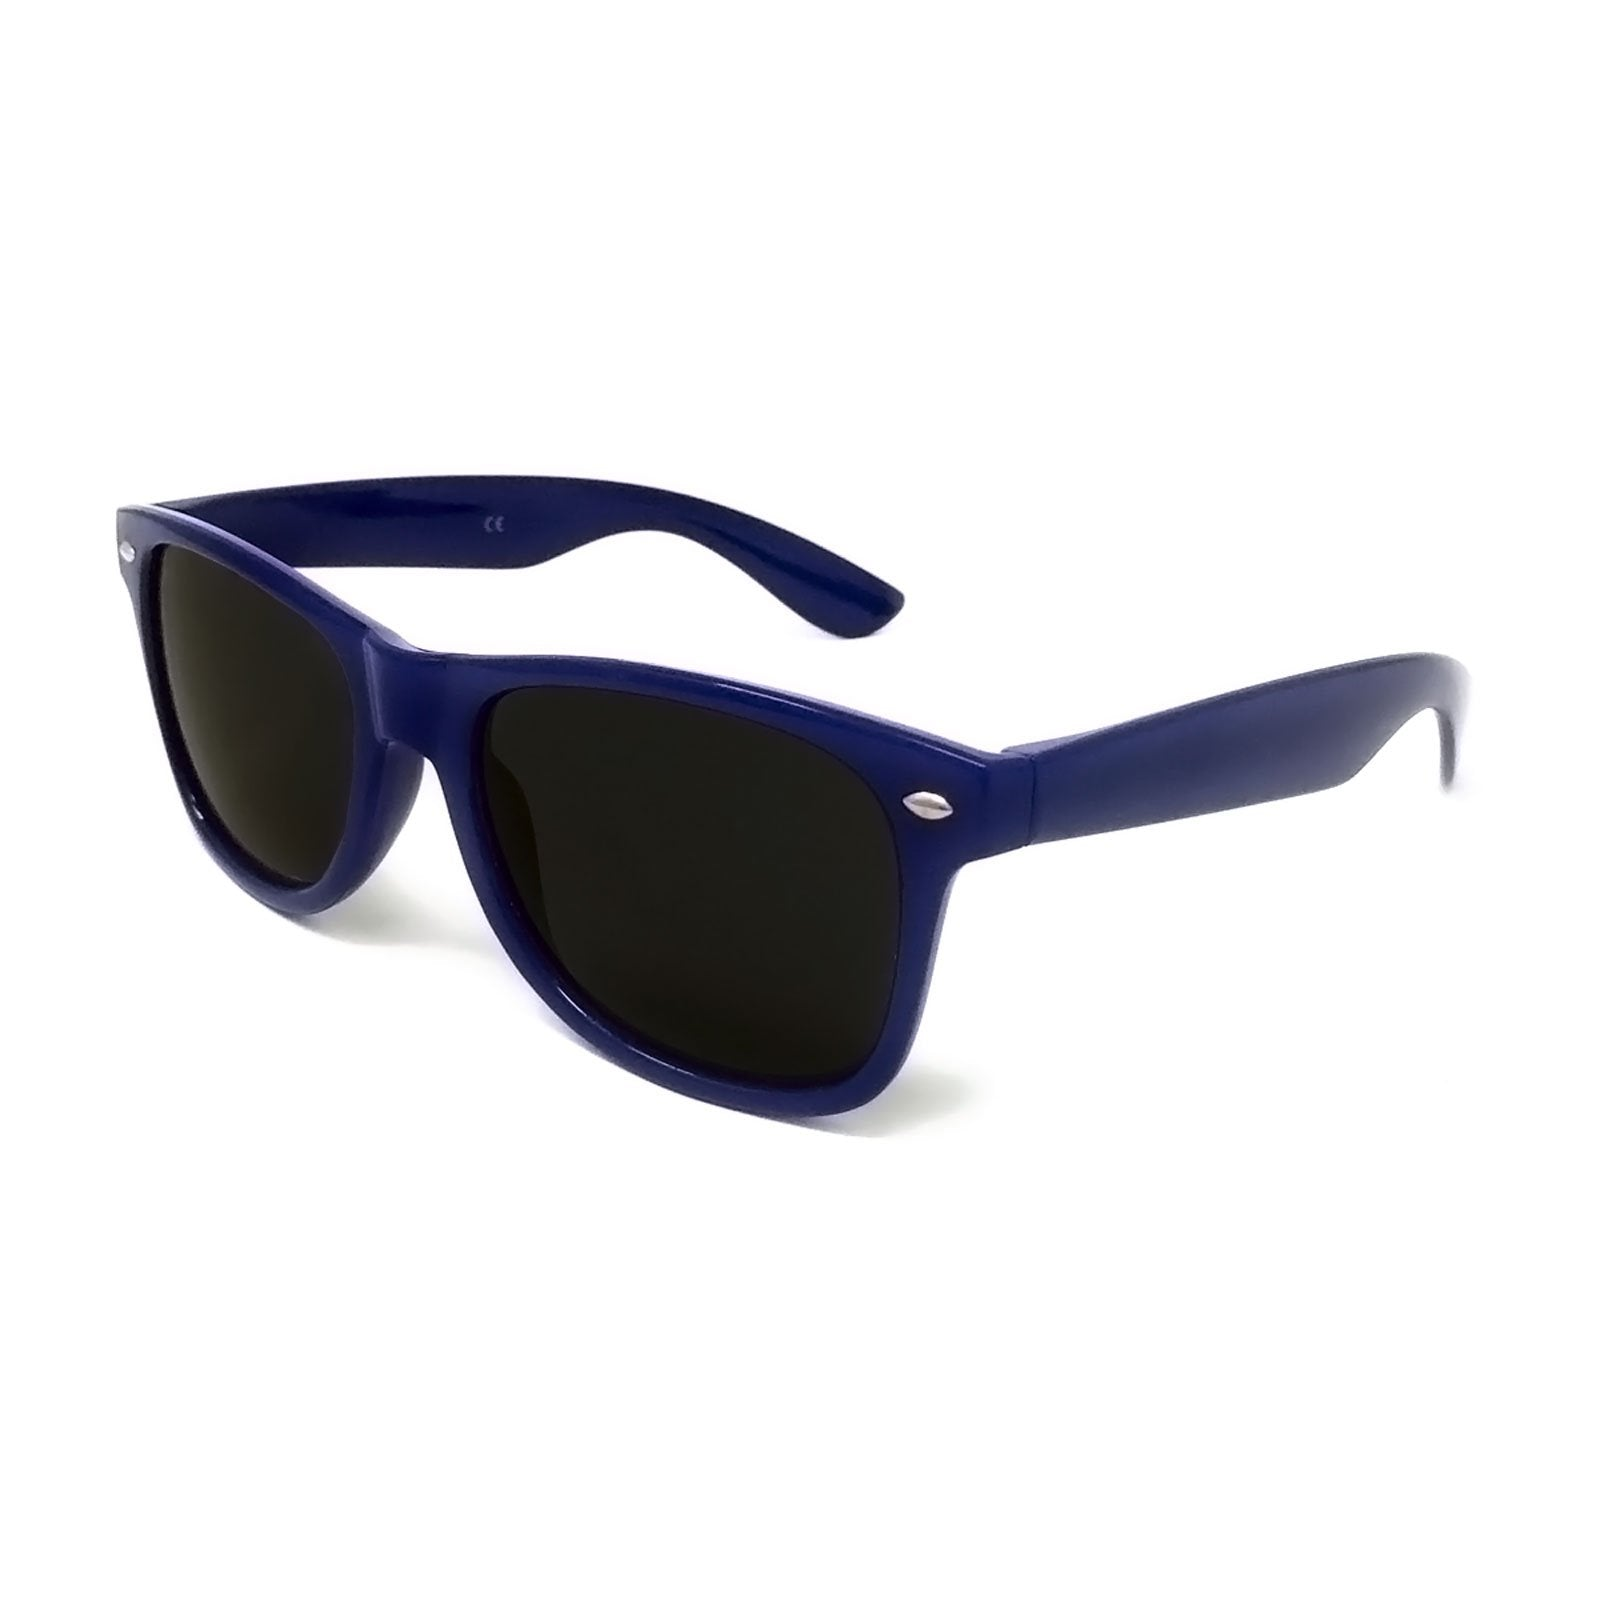 Wholesale Classic Sunglasses - Dark Blue Frame, Black Lens